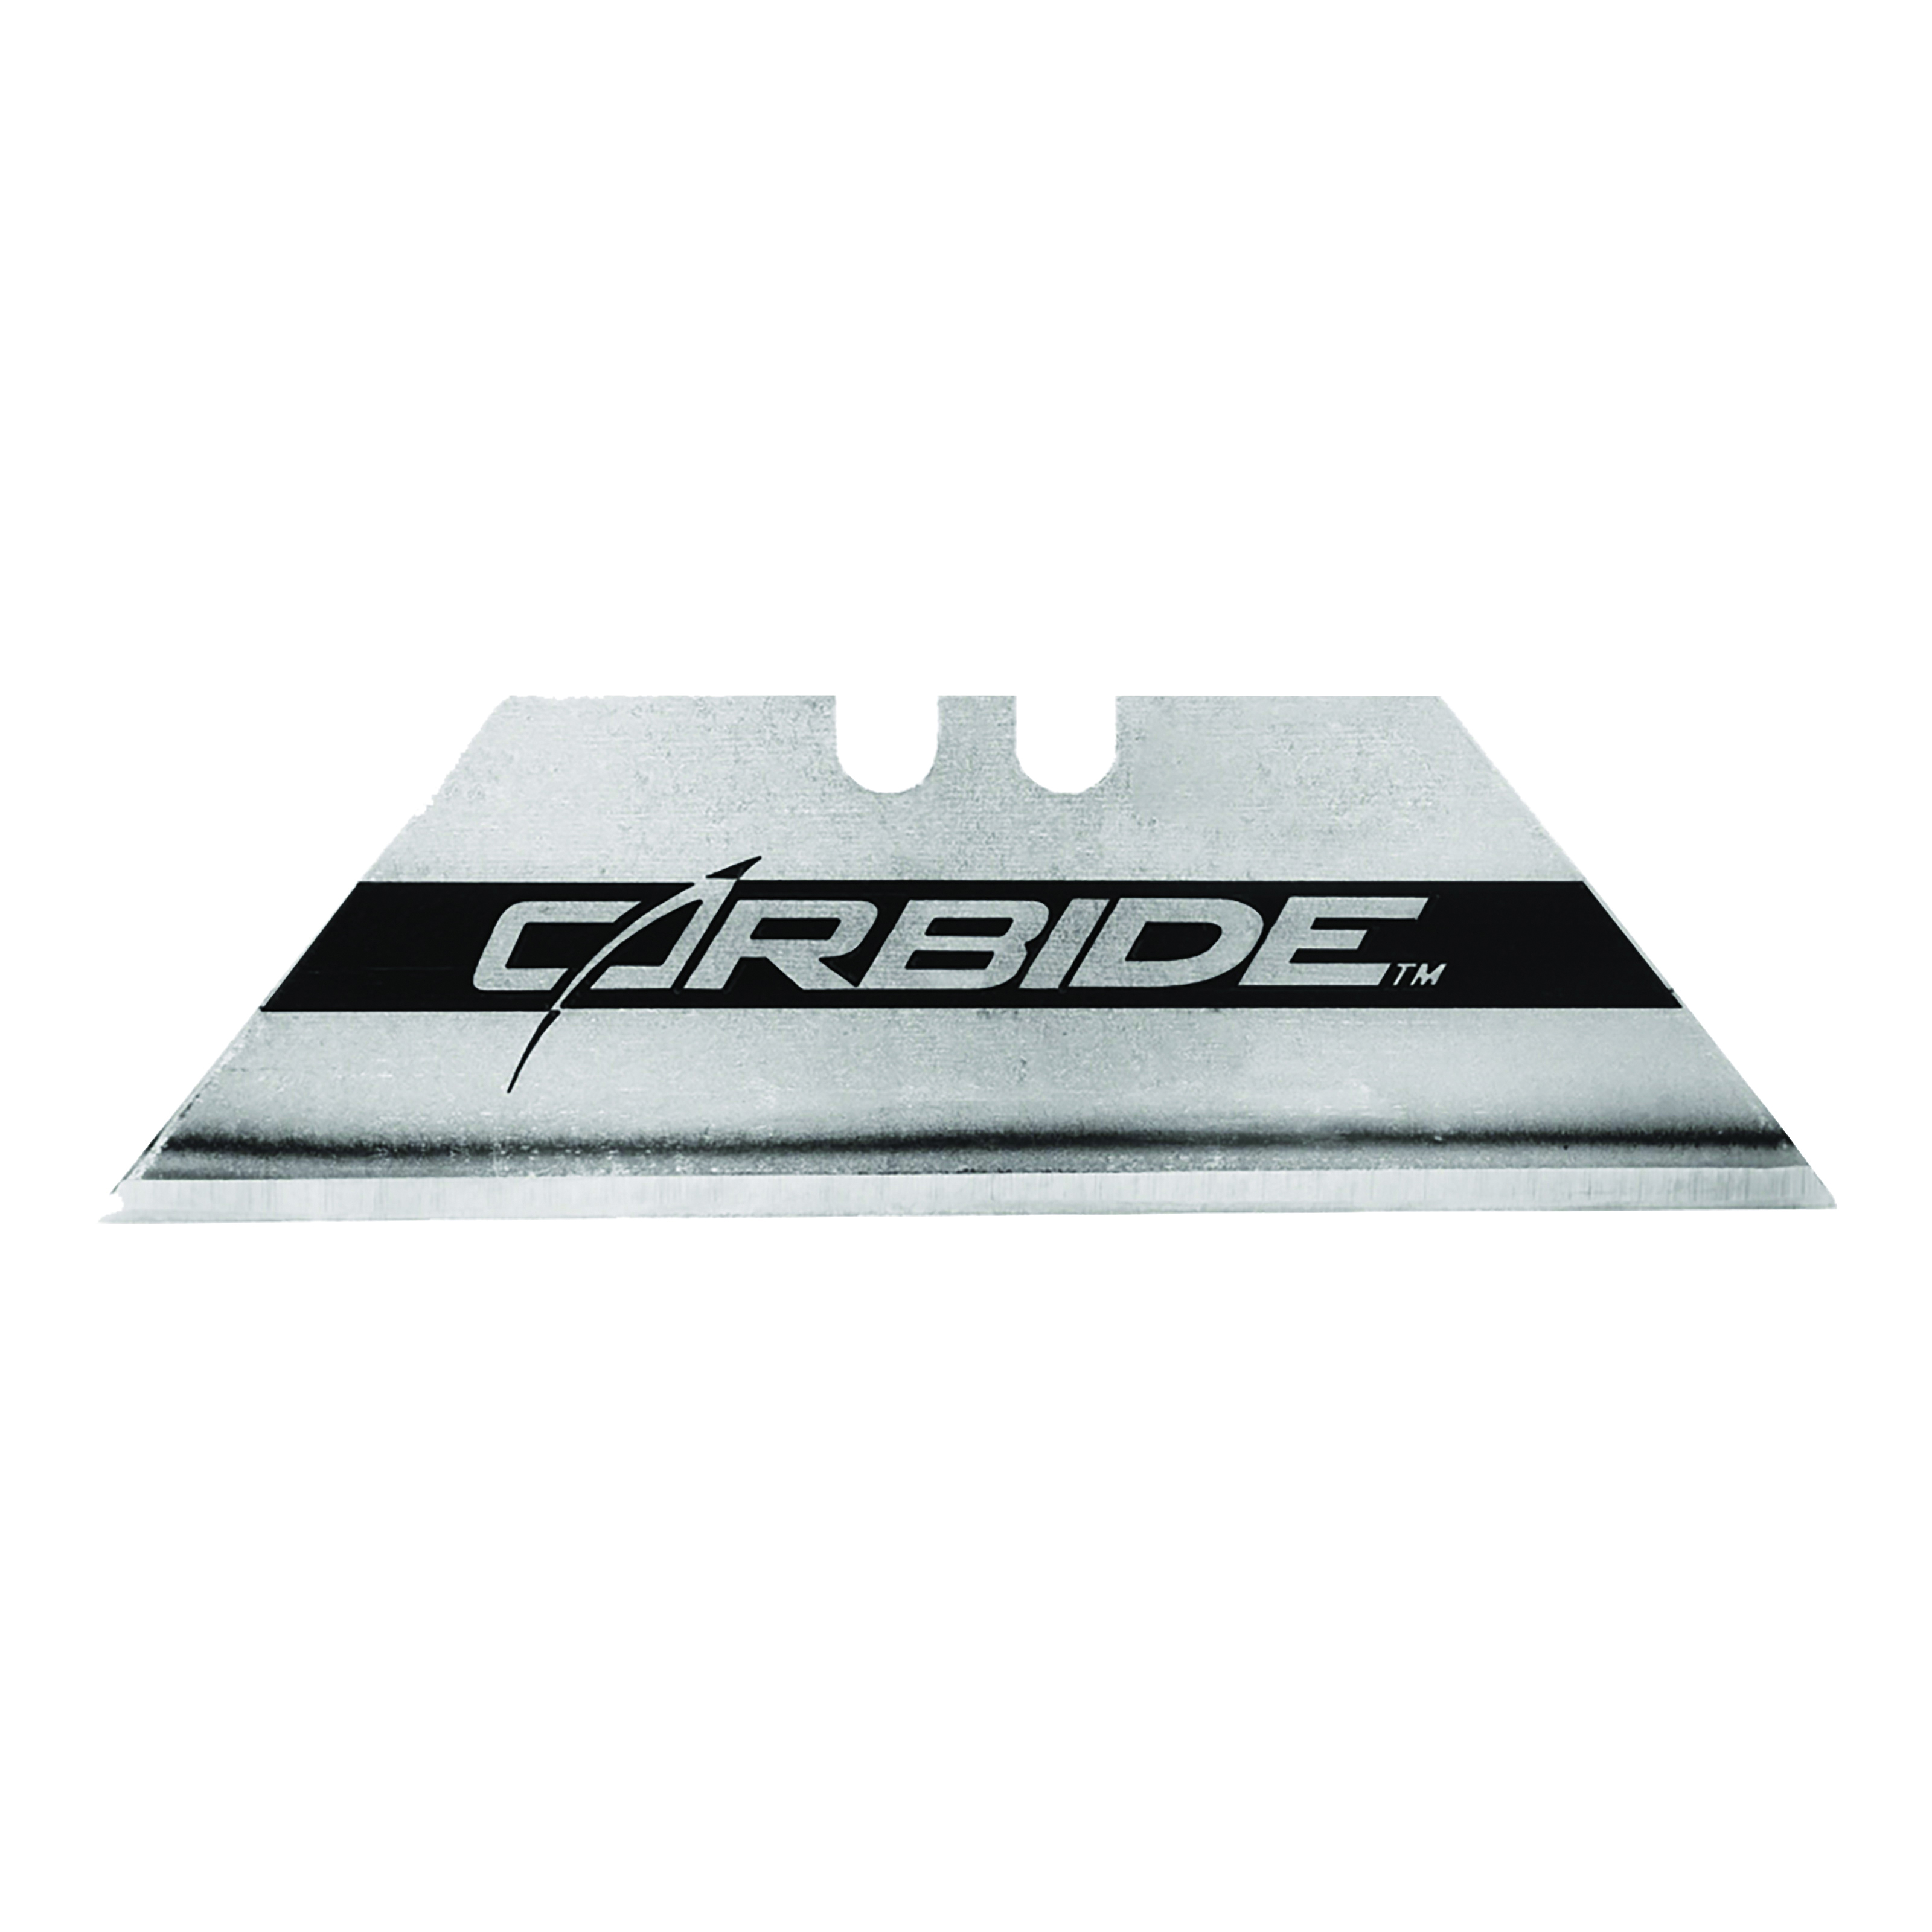 Picture of STANLEY 11-800L Utility Blade, 2-7/16 in L, Carbide Steel, 2 -Point, 50/PK, Pack